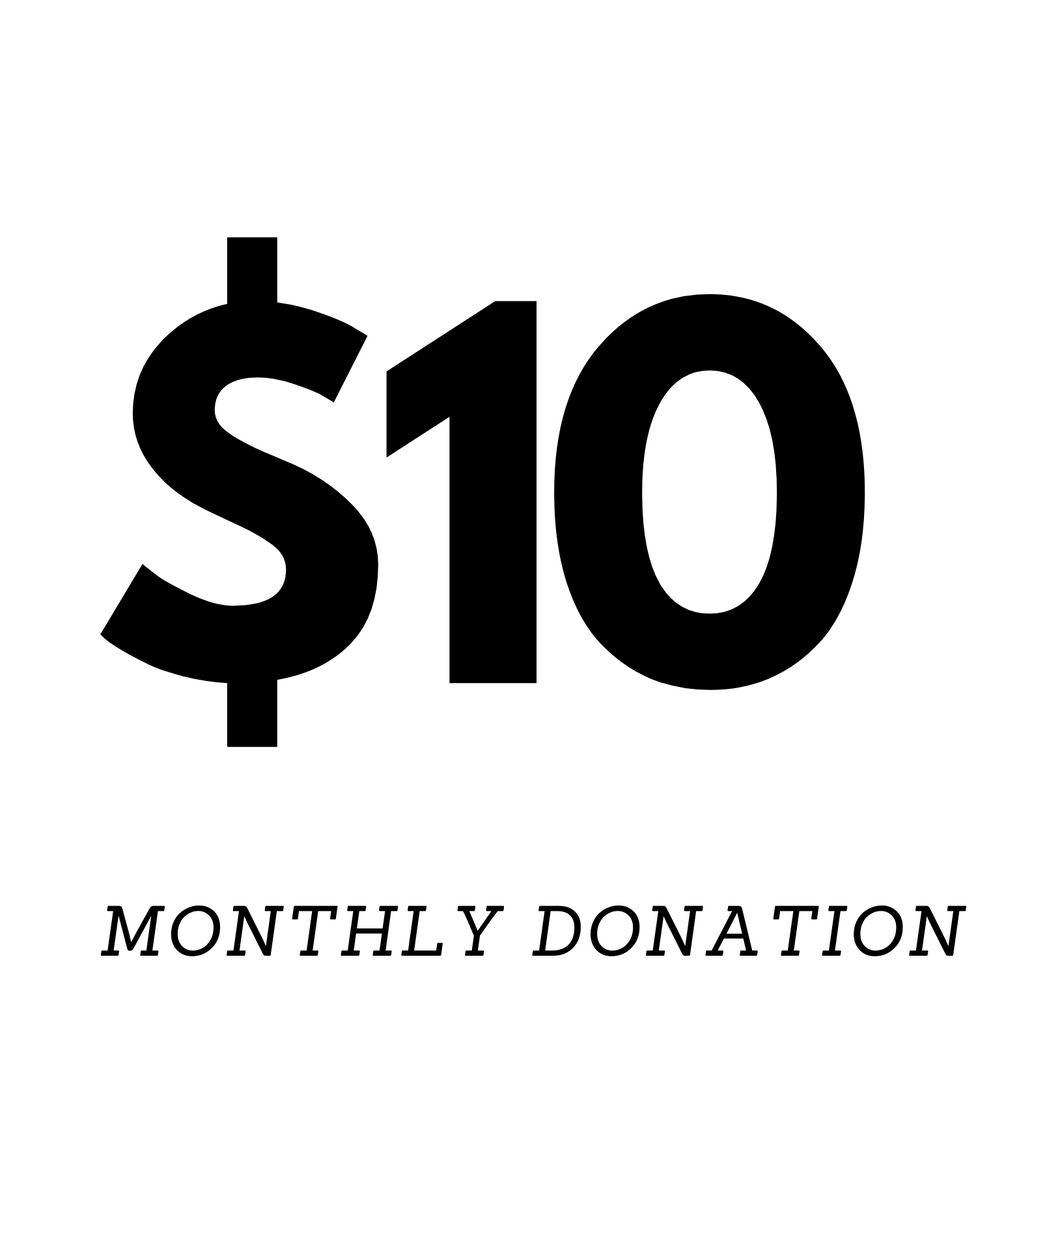 $10 Monthly Donation